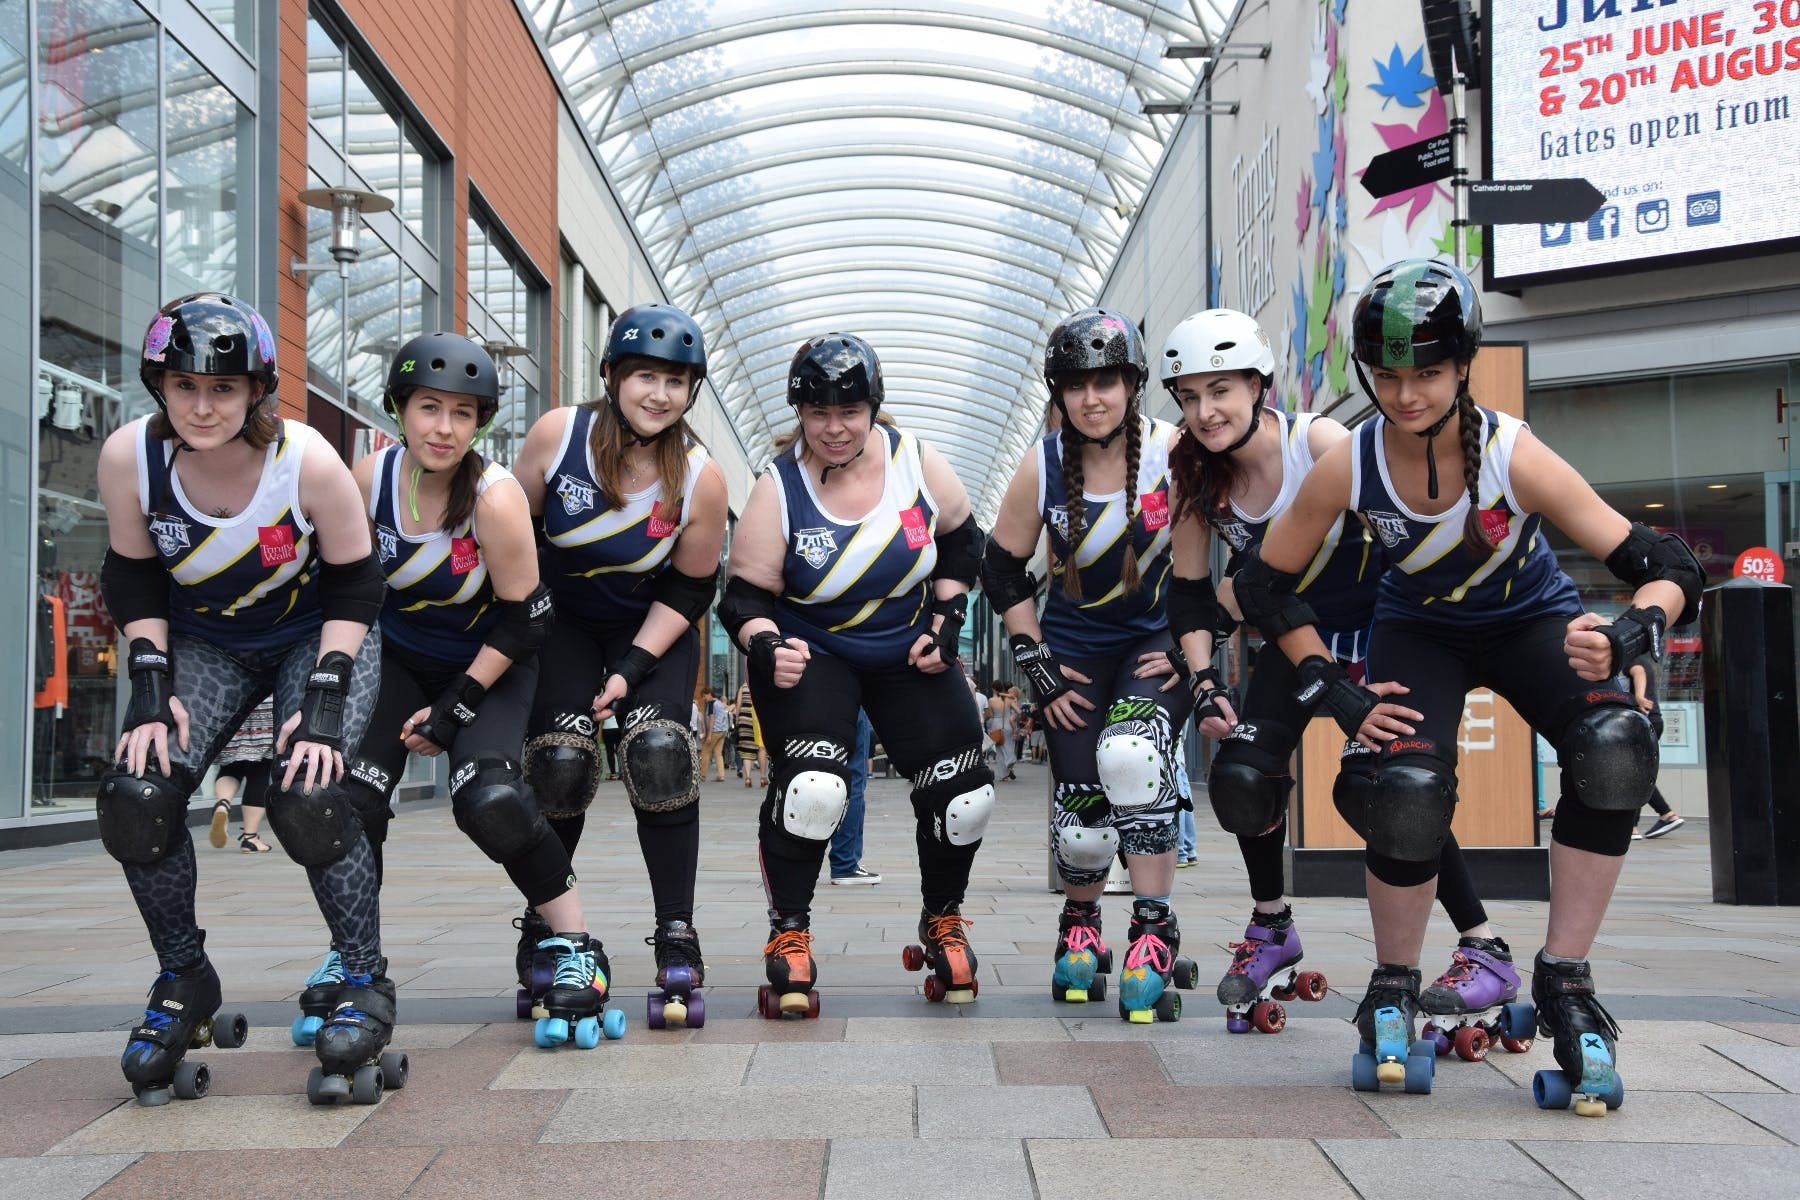 Trinity Rollers in kit sponsored by Trinity Walk